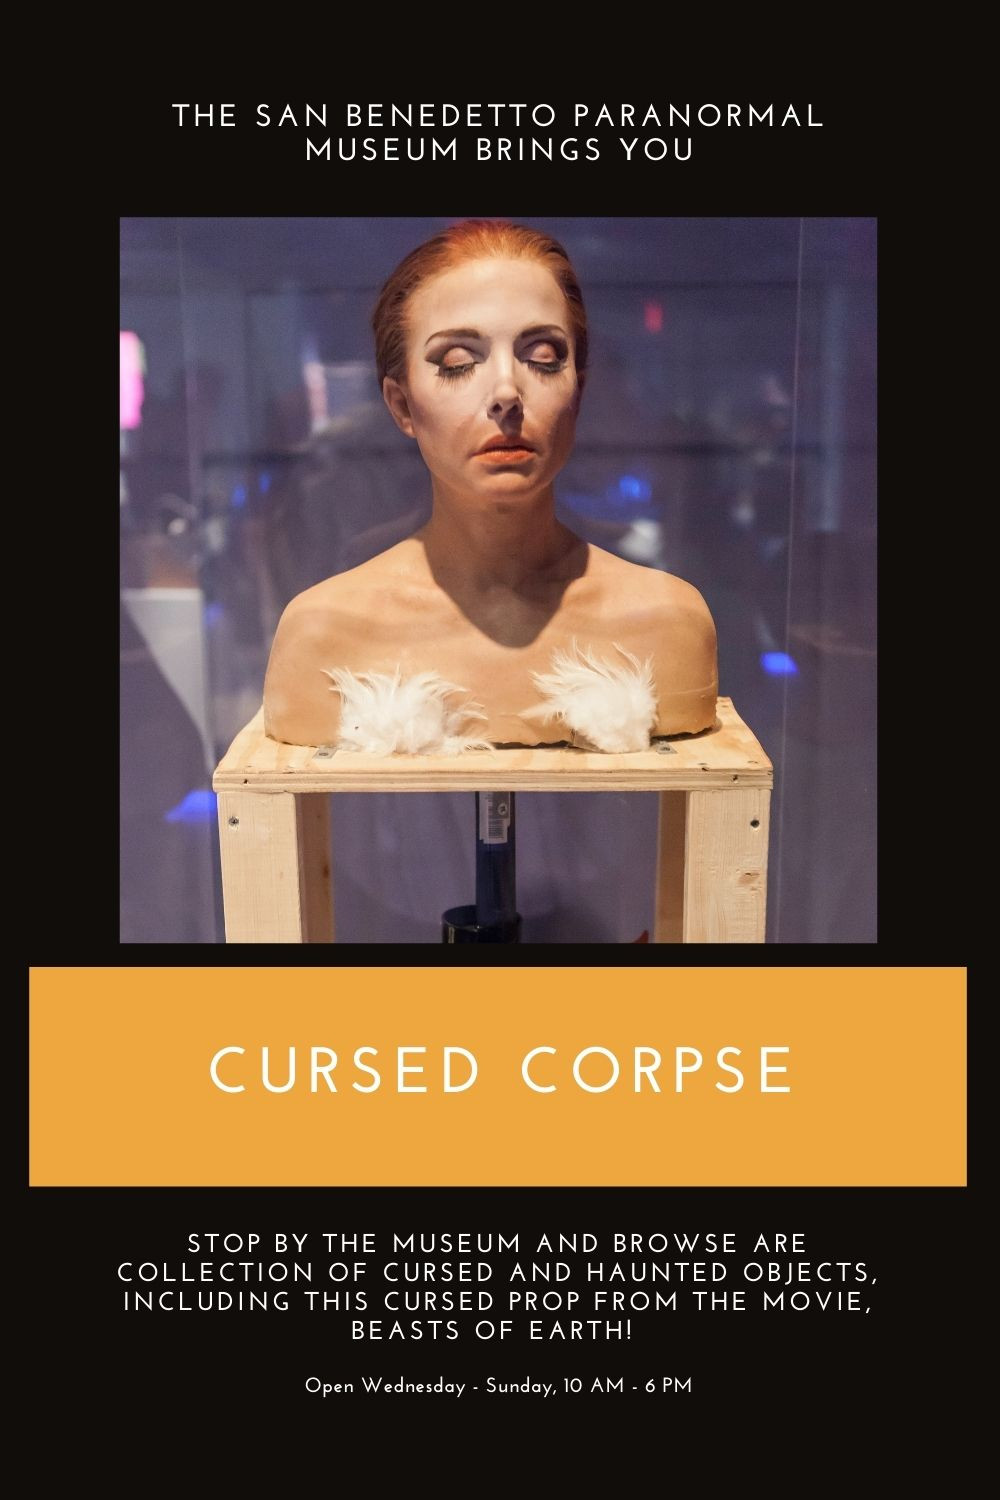 The San Benedetto Paranormal Museum brings you the cursed corpse! STOP BY THE MUSEUM AND BROWSE ARE COLLECTION OF cursed and haunted objects, including this cursed prop from the movie, BEASTS OF EARTH!